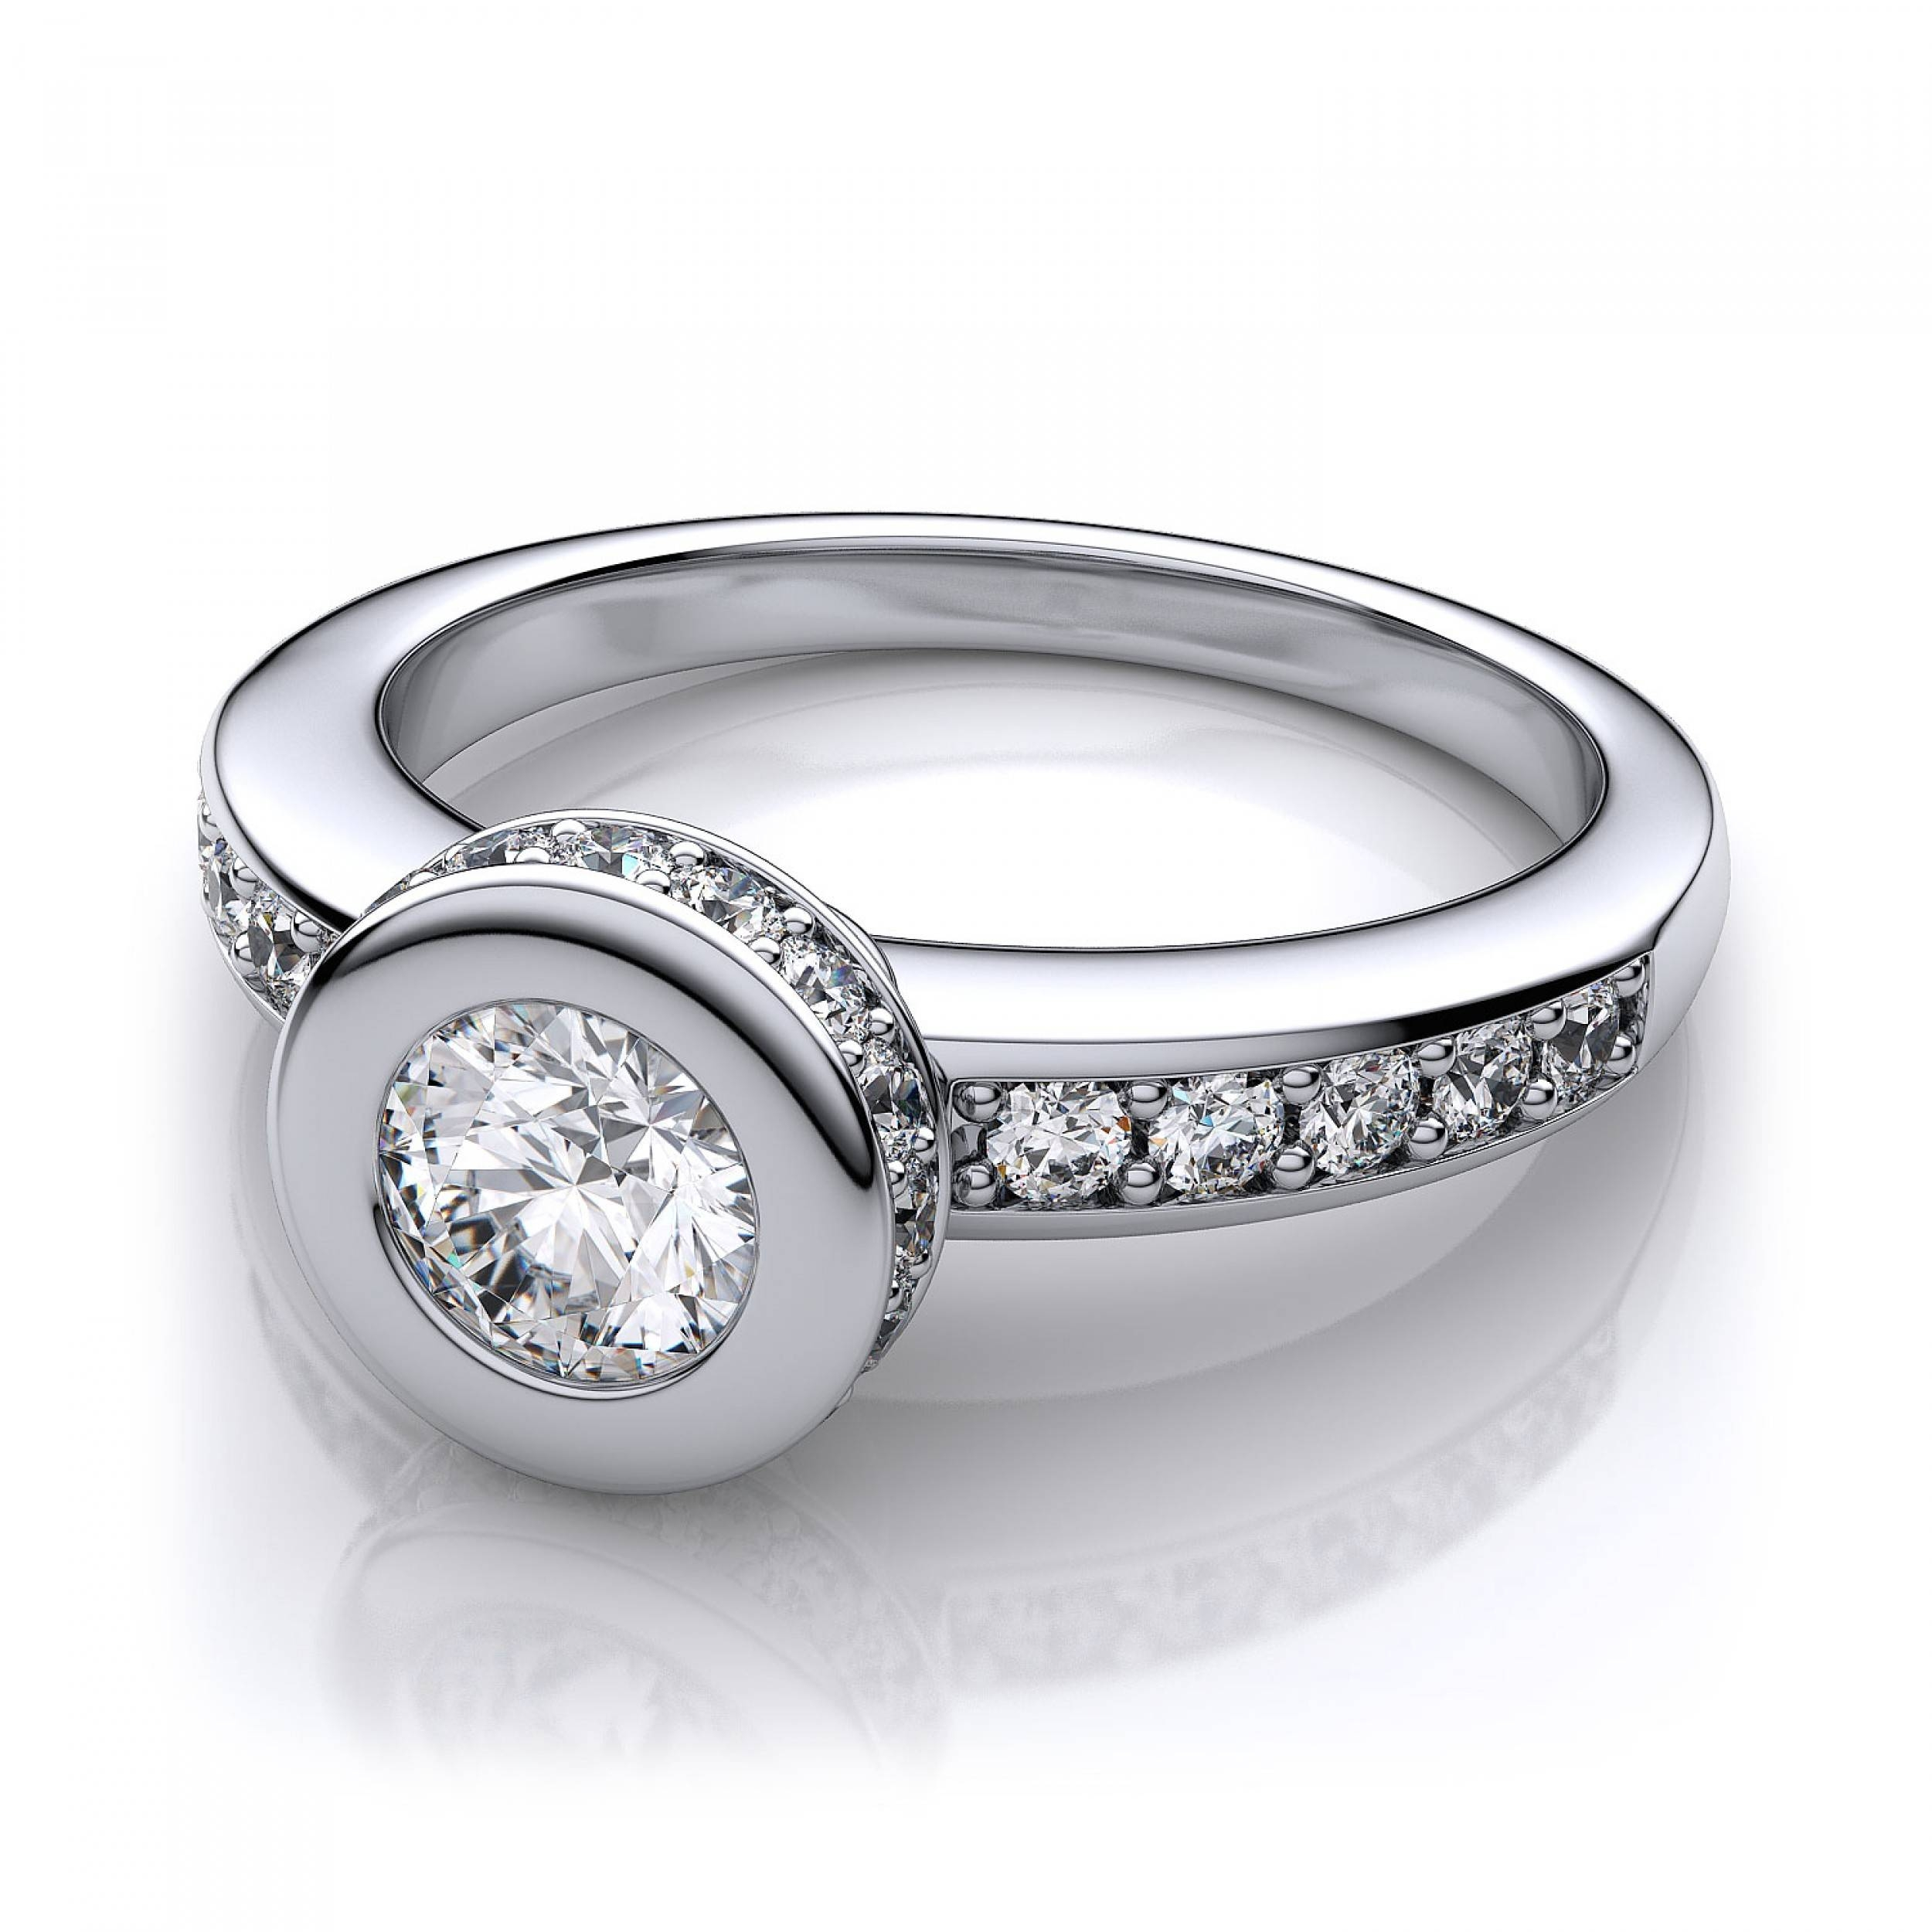 35ctw Halo Round Diamond Sidestones Bezel Set Sidestones Throughout Diamond Wedding Rings Settings (View 3 of 15)